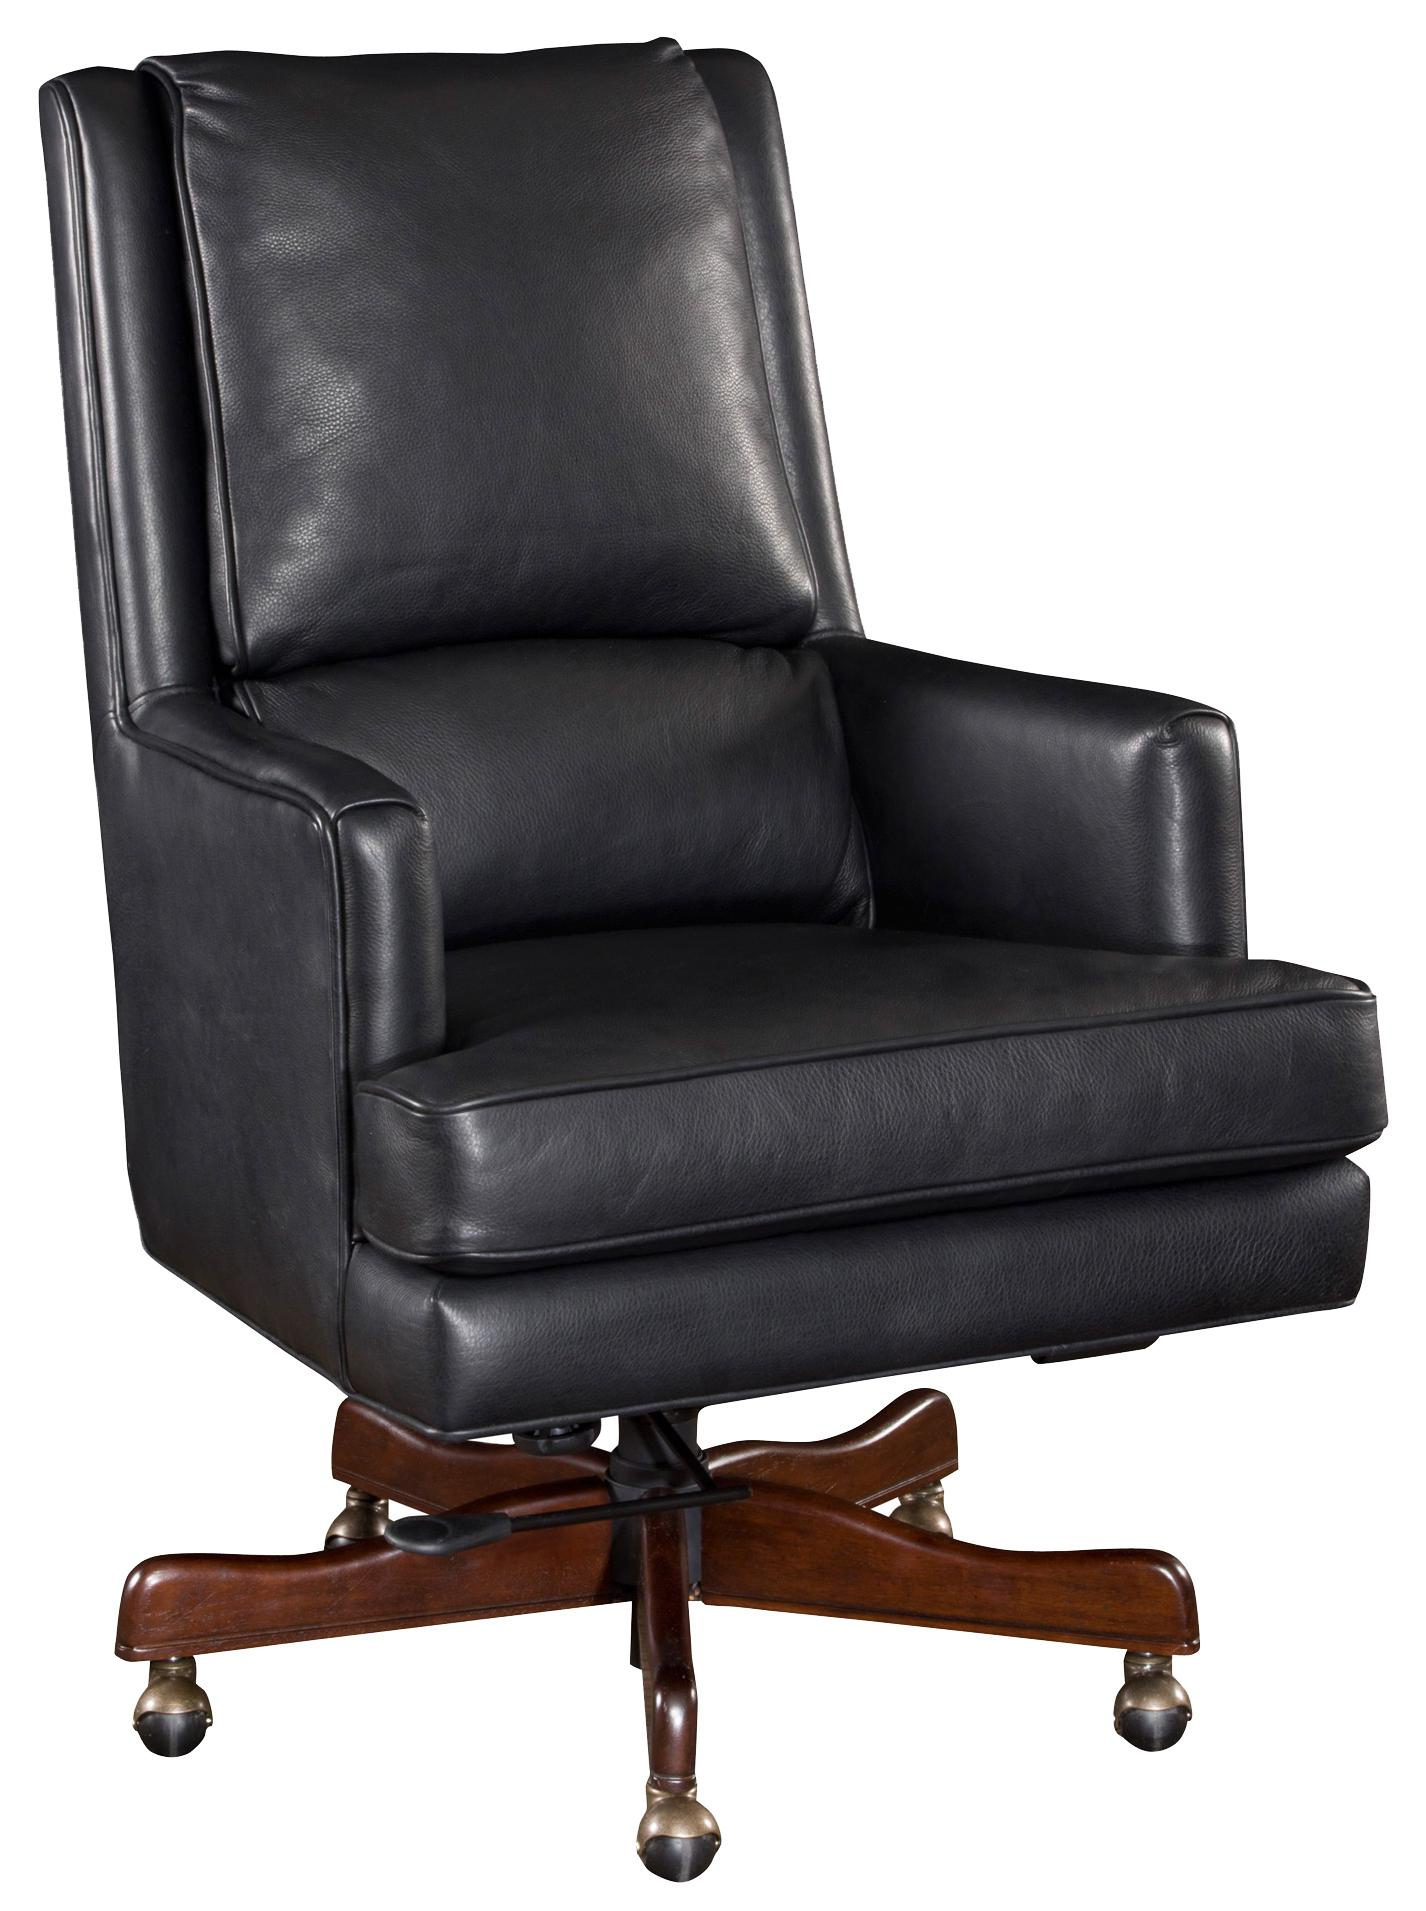 Executive Seating Leather Desk Chair by Hooker Furniture at Baer's Furniture